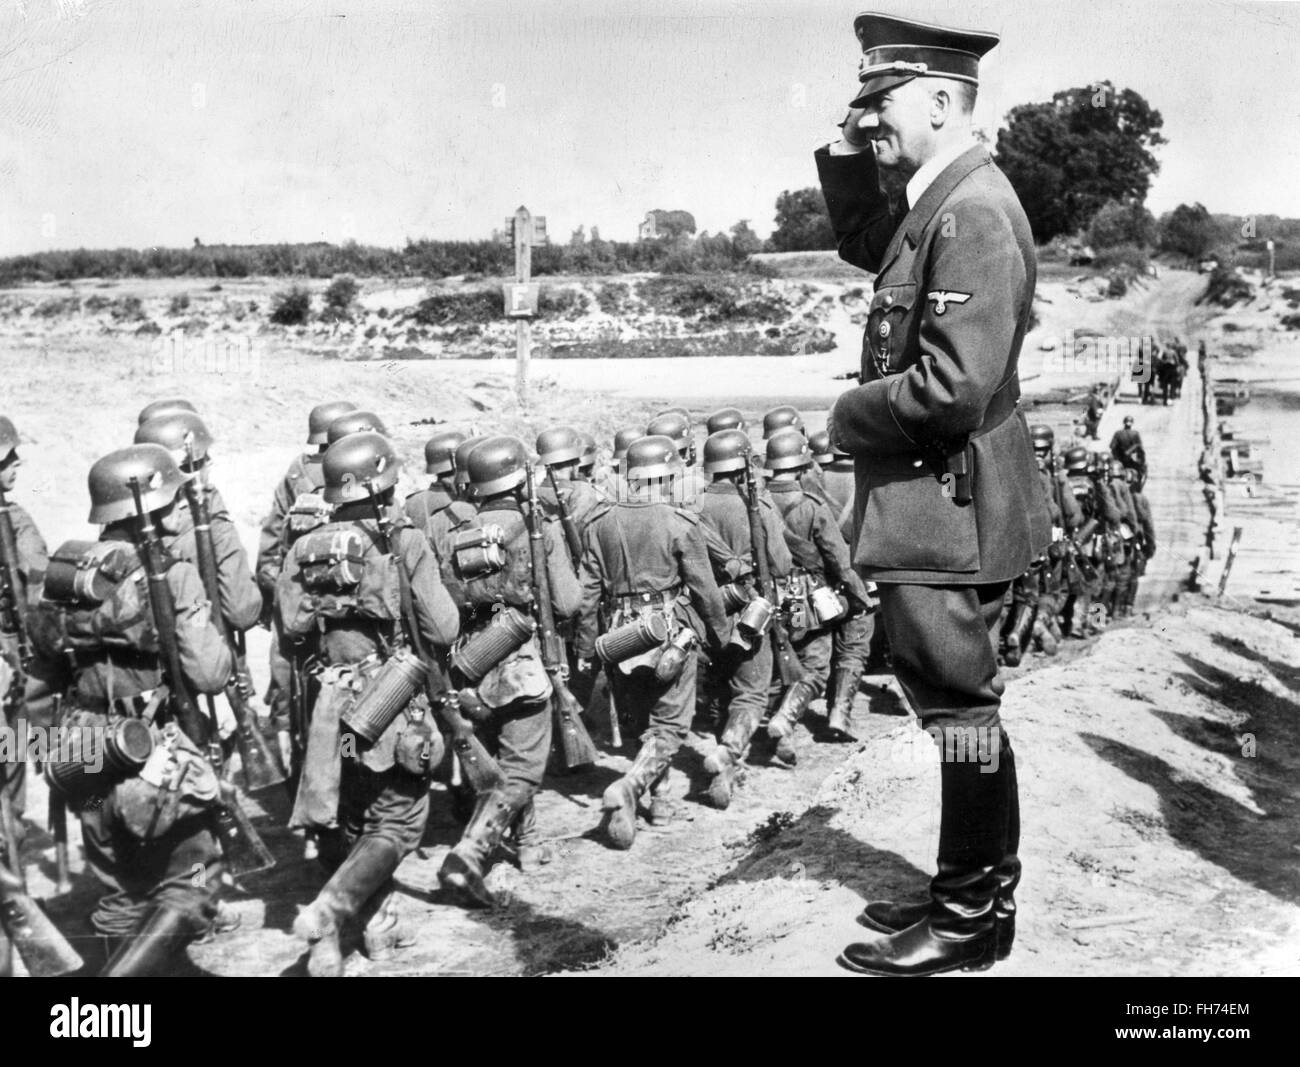 Adolf Hitler Reviewing troops - German Nazi Propaganda - WWII - Stock Image